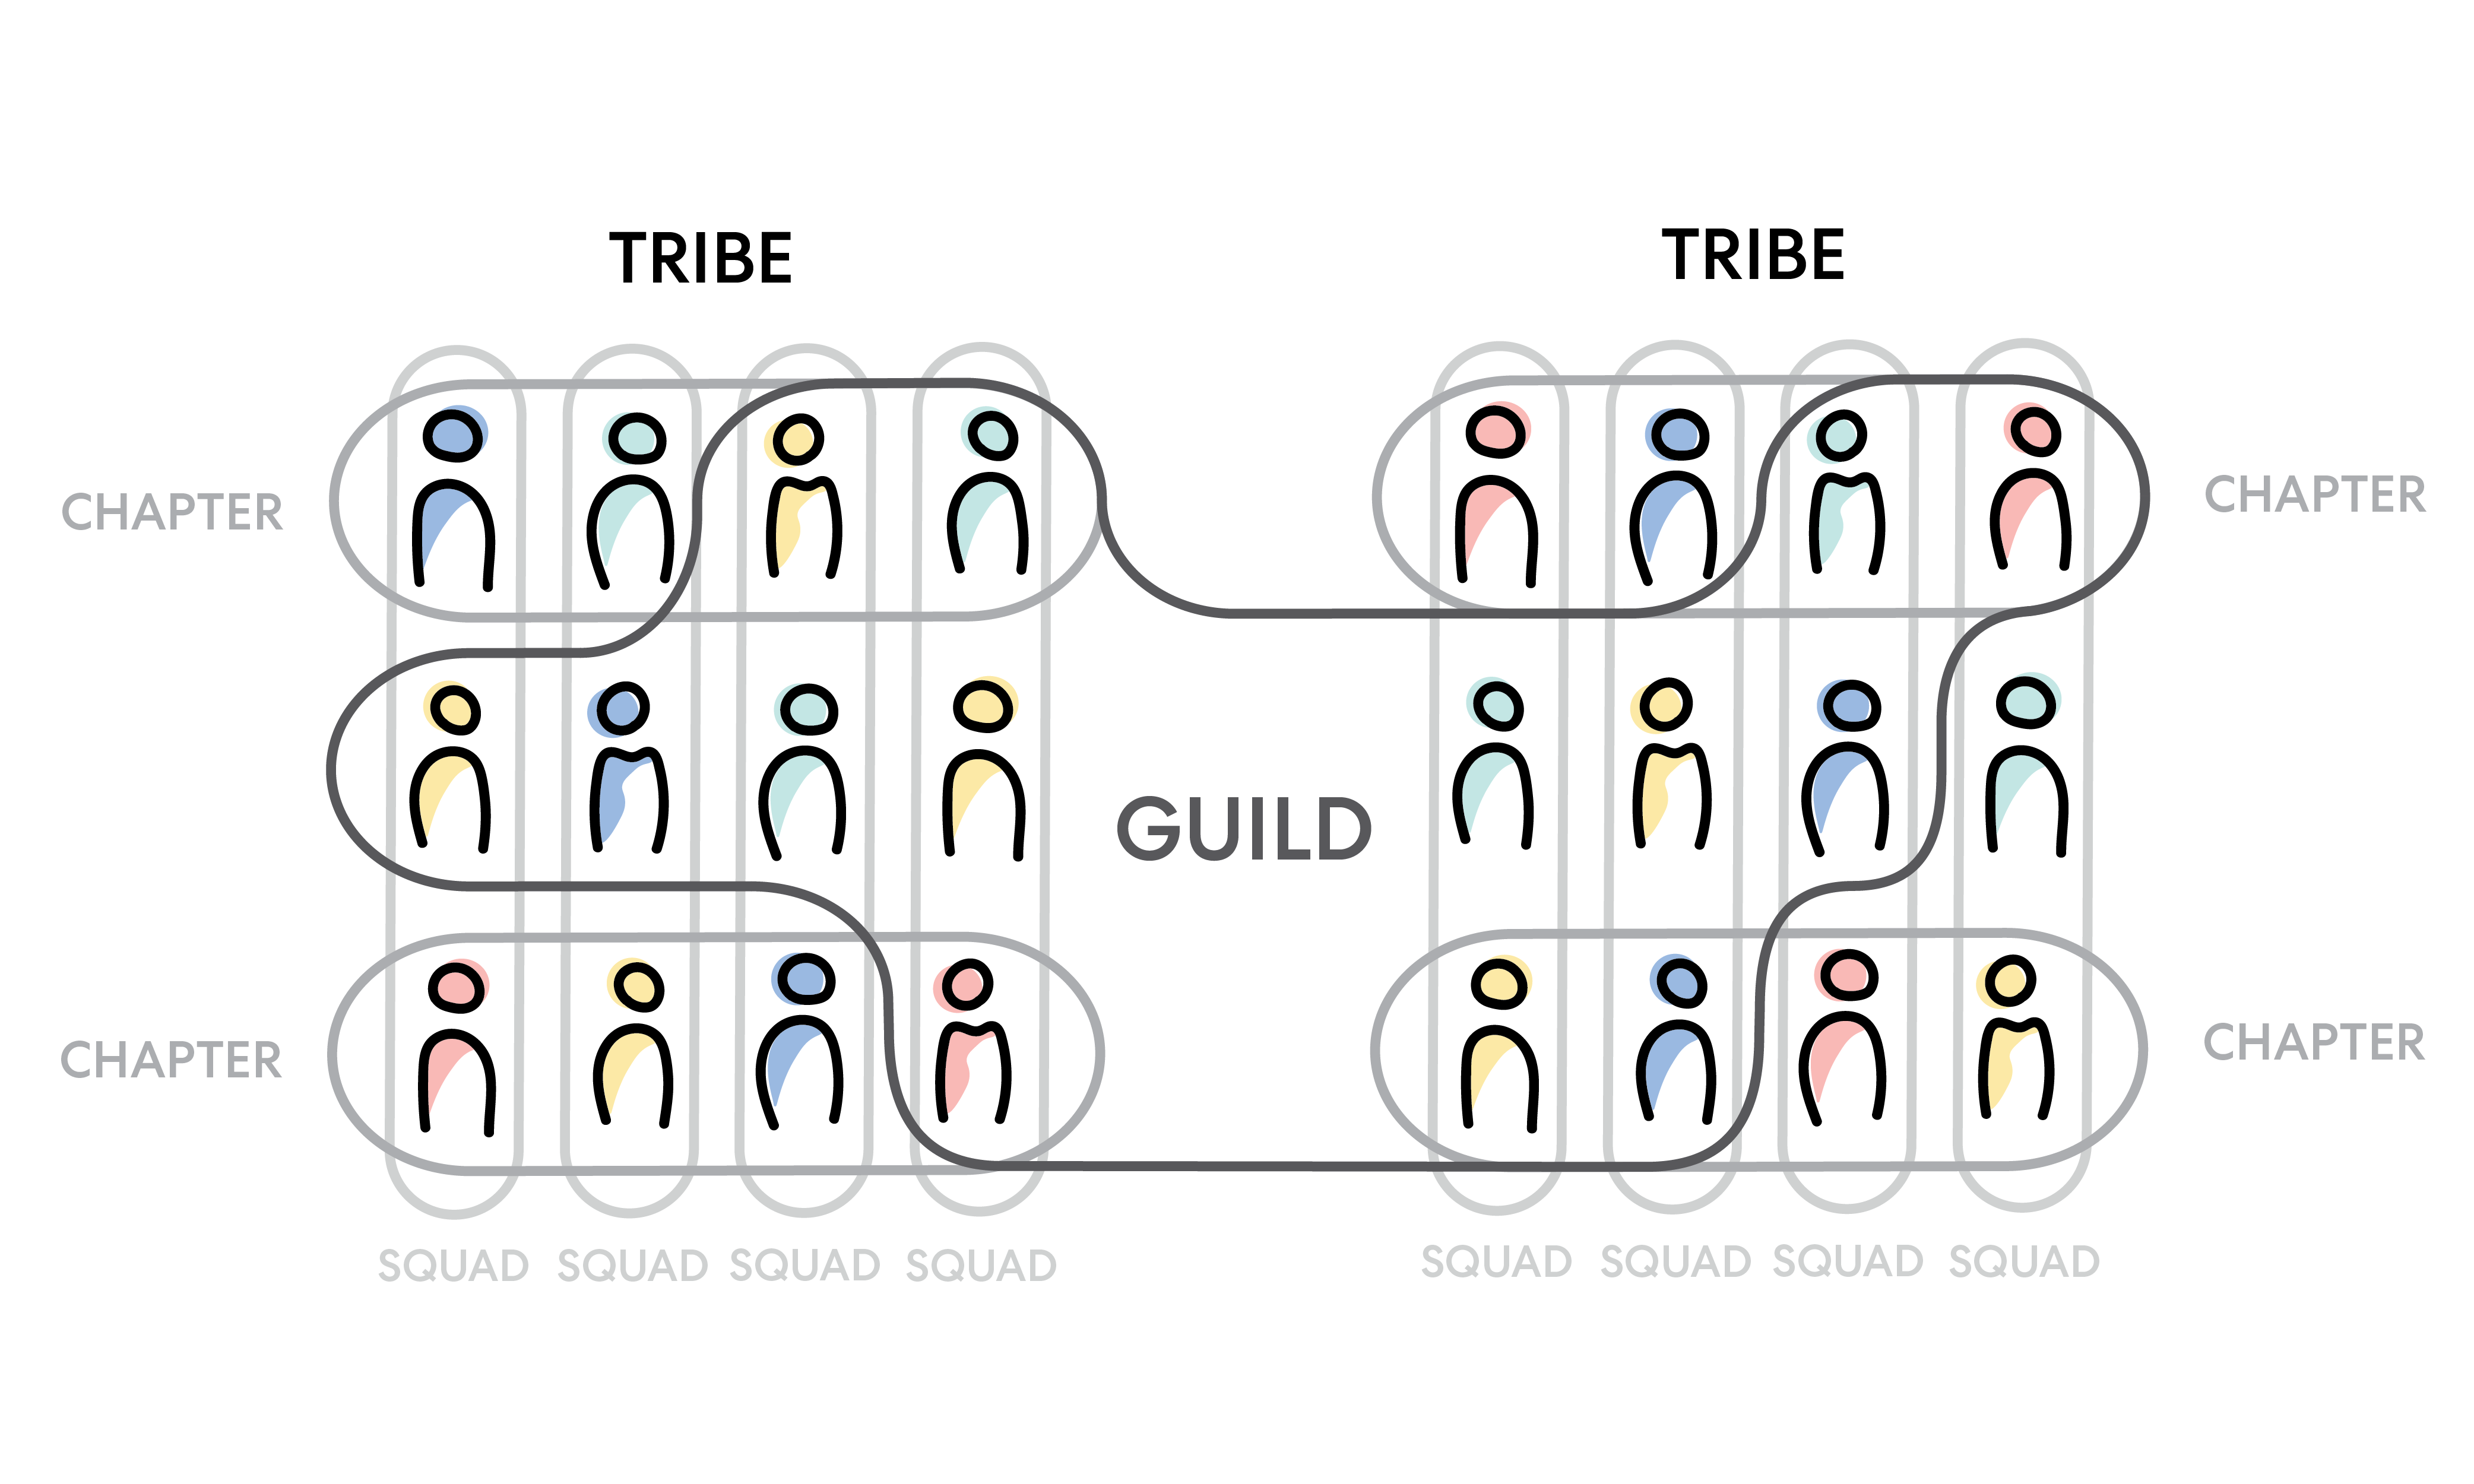 squads tribes and chapters agile model